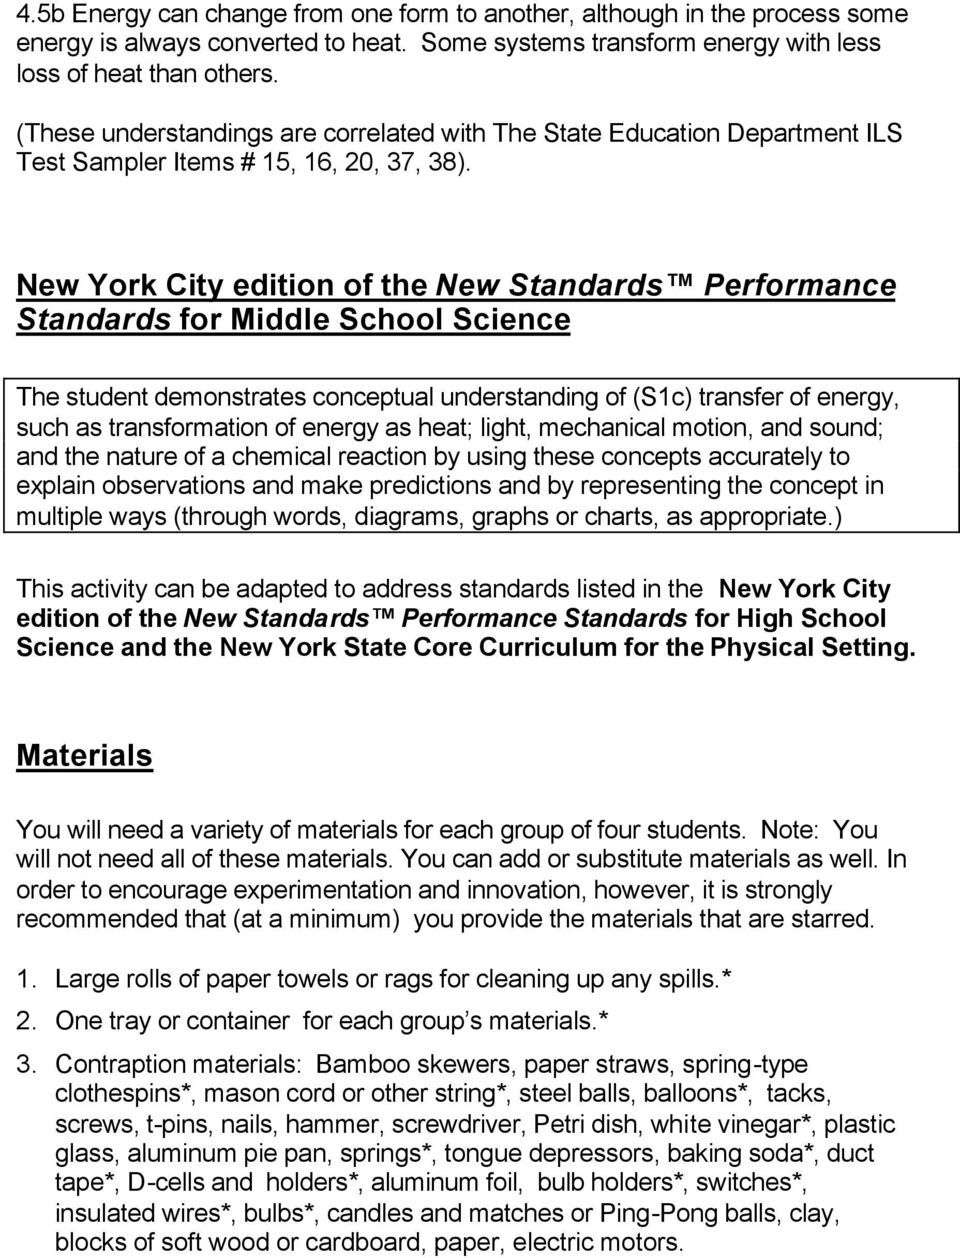 new york city edition of the new standards performance standards for middle  school science the student